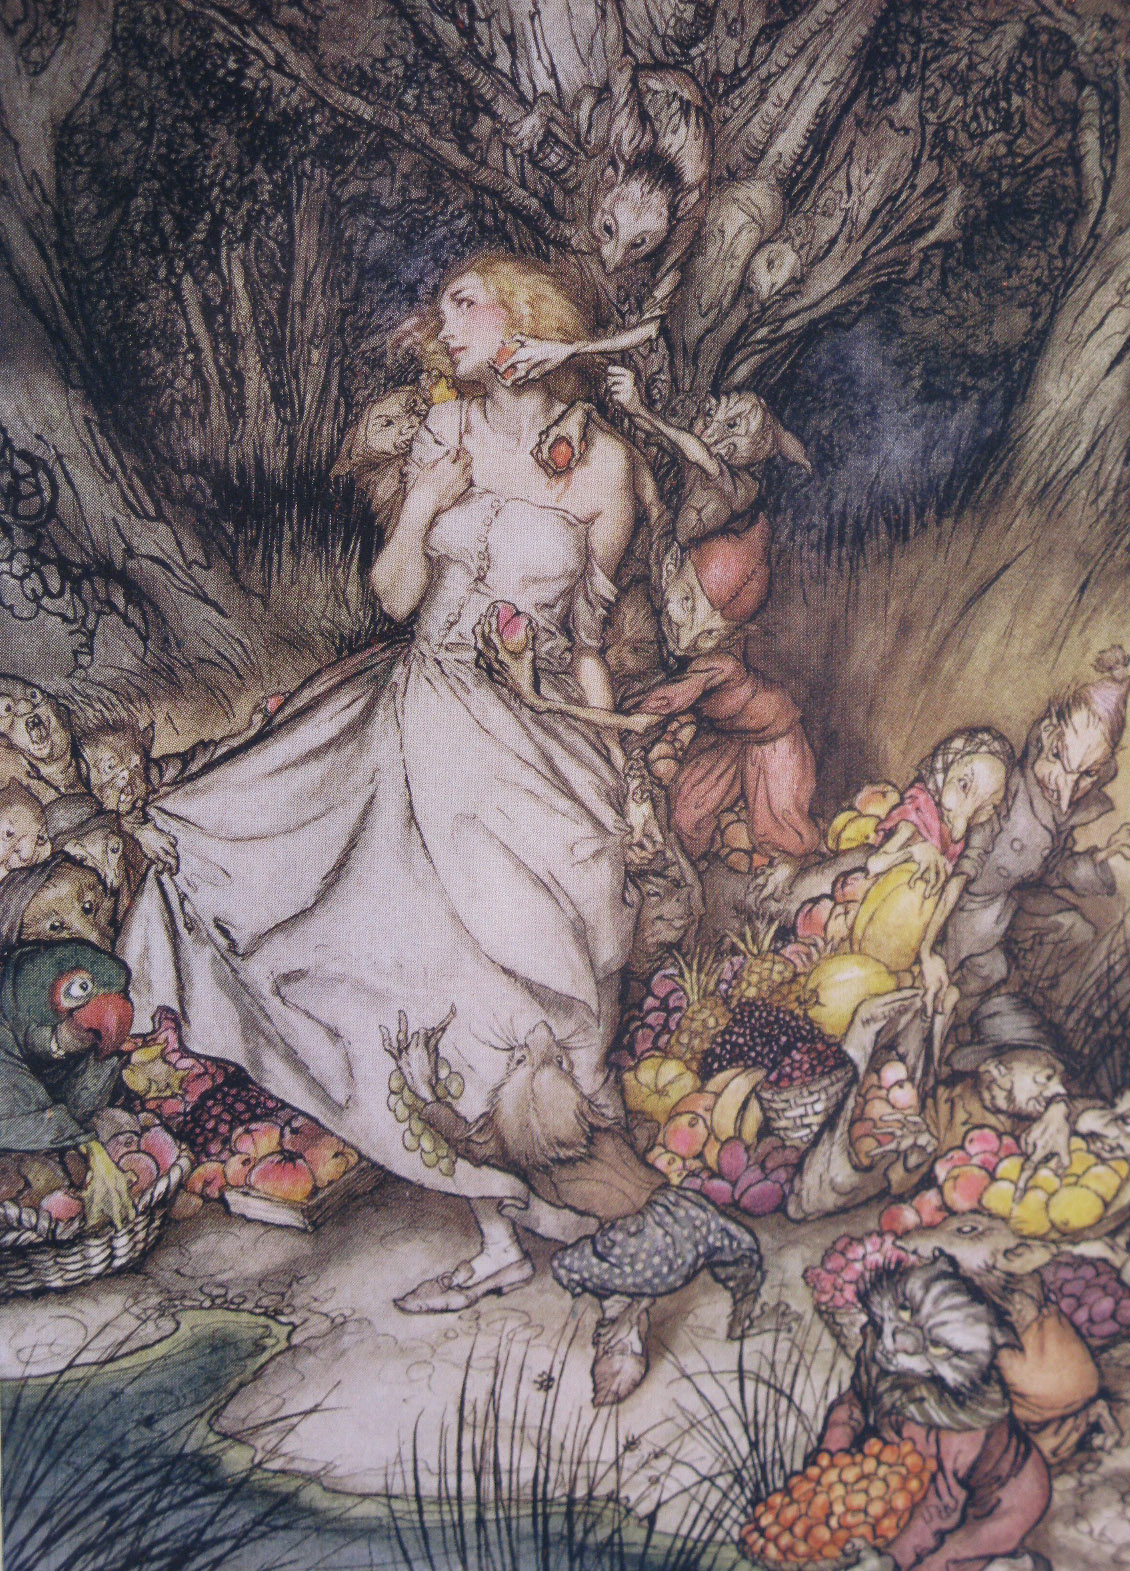 goblin market symbolism This is a literary analysis on the symbolism in the goblin market poem by christina rossetti are you looking for a similar paper or any other quality academic essay.